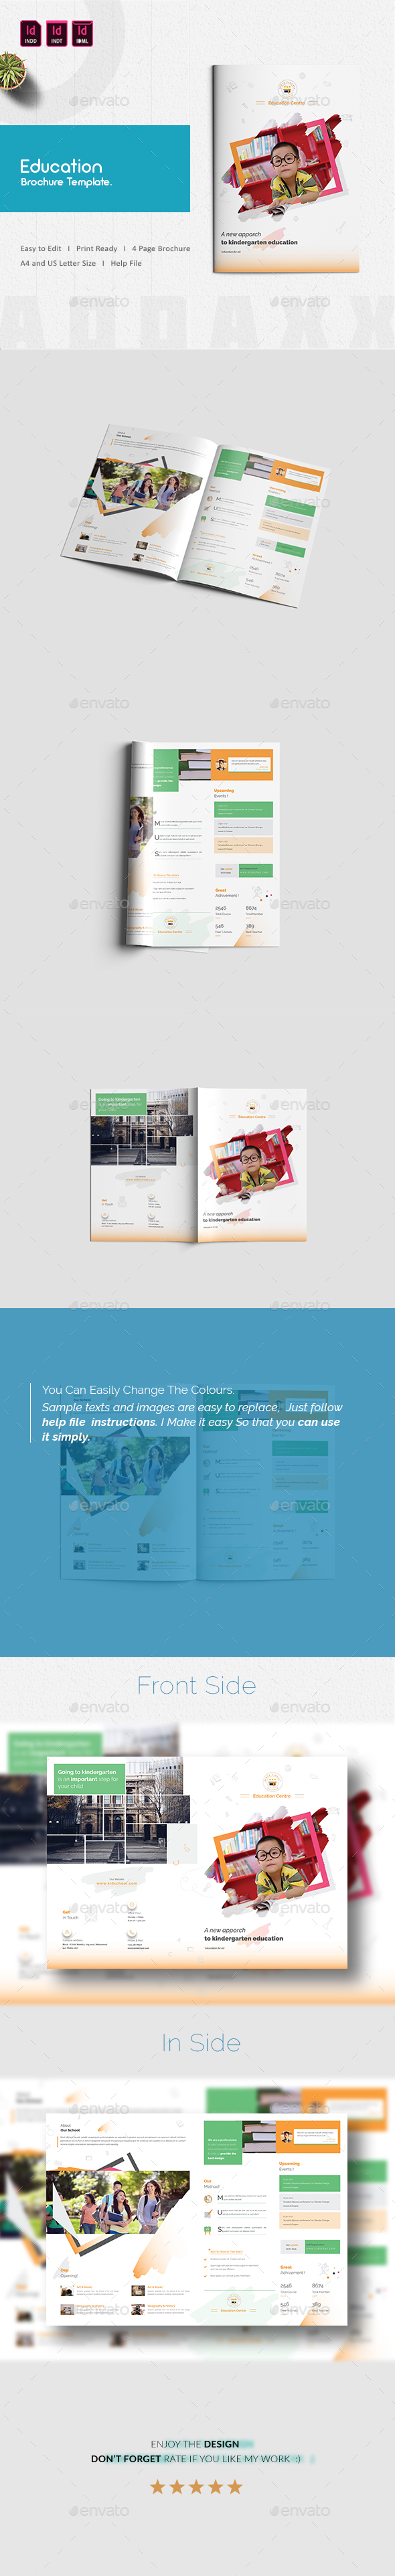 GraphicRiver Education Brochure Template 21048432